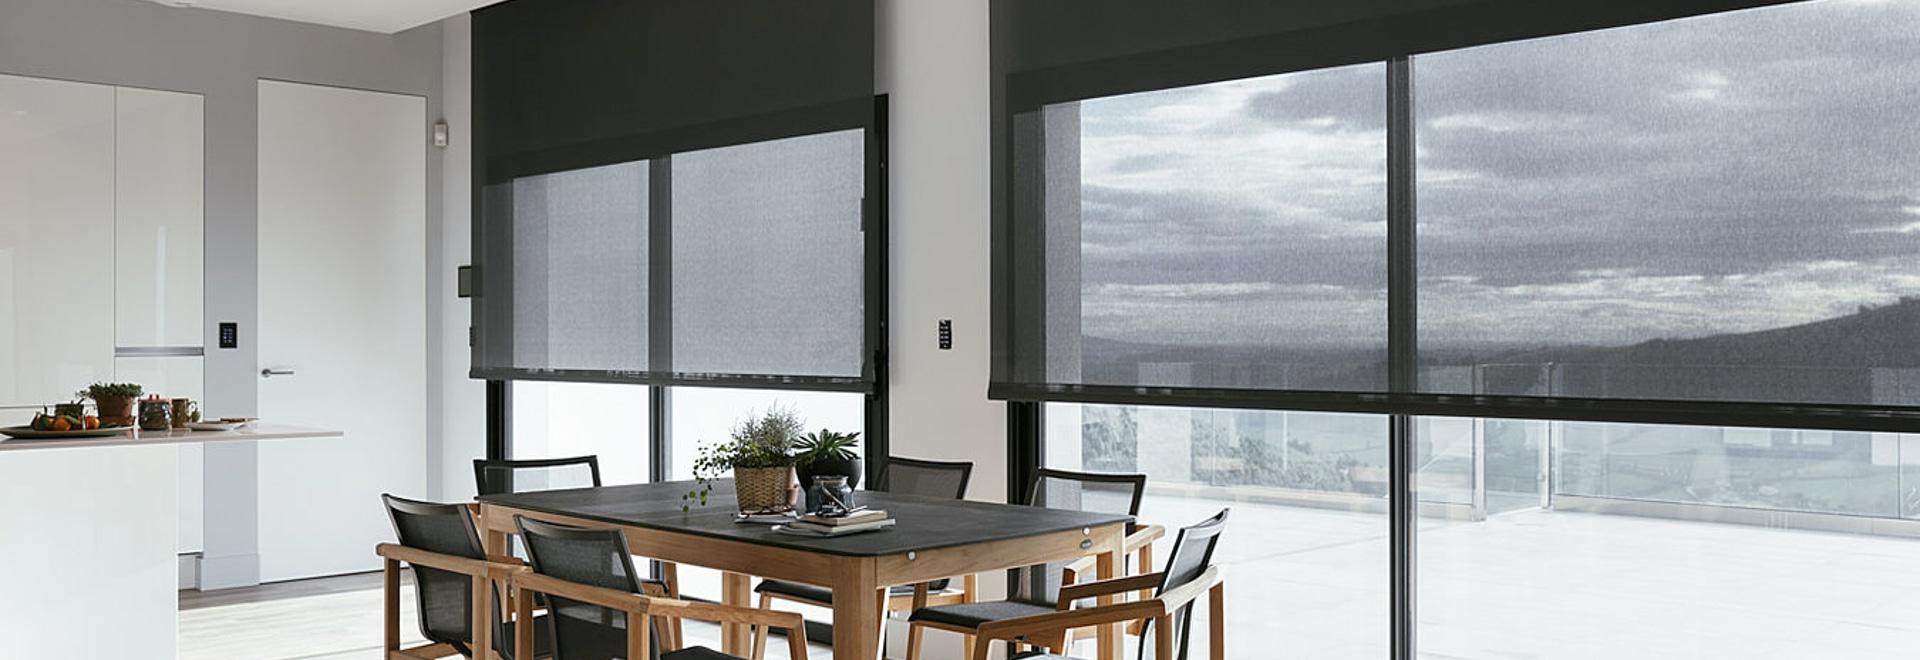 Soltis 88 Screens: a perfect combination of thermal protection and visual comfort